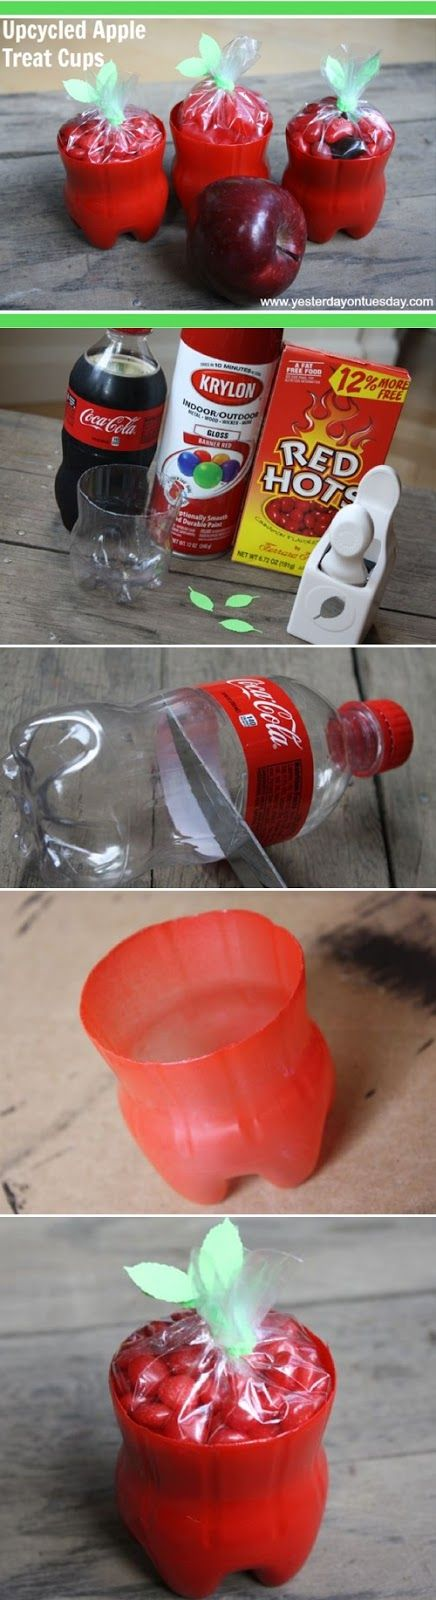 303Pixels: Upcycled apple treat cups